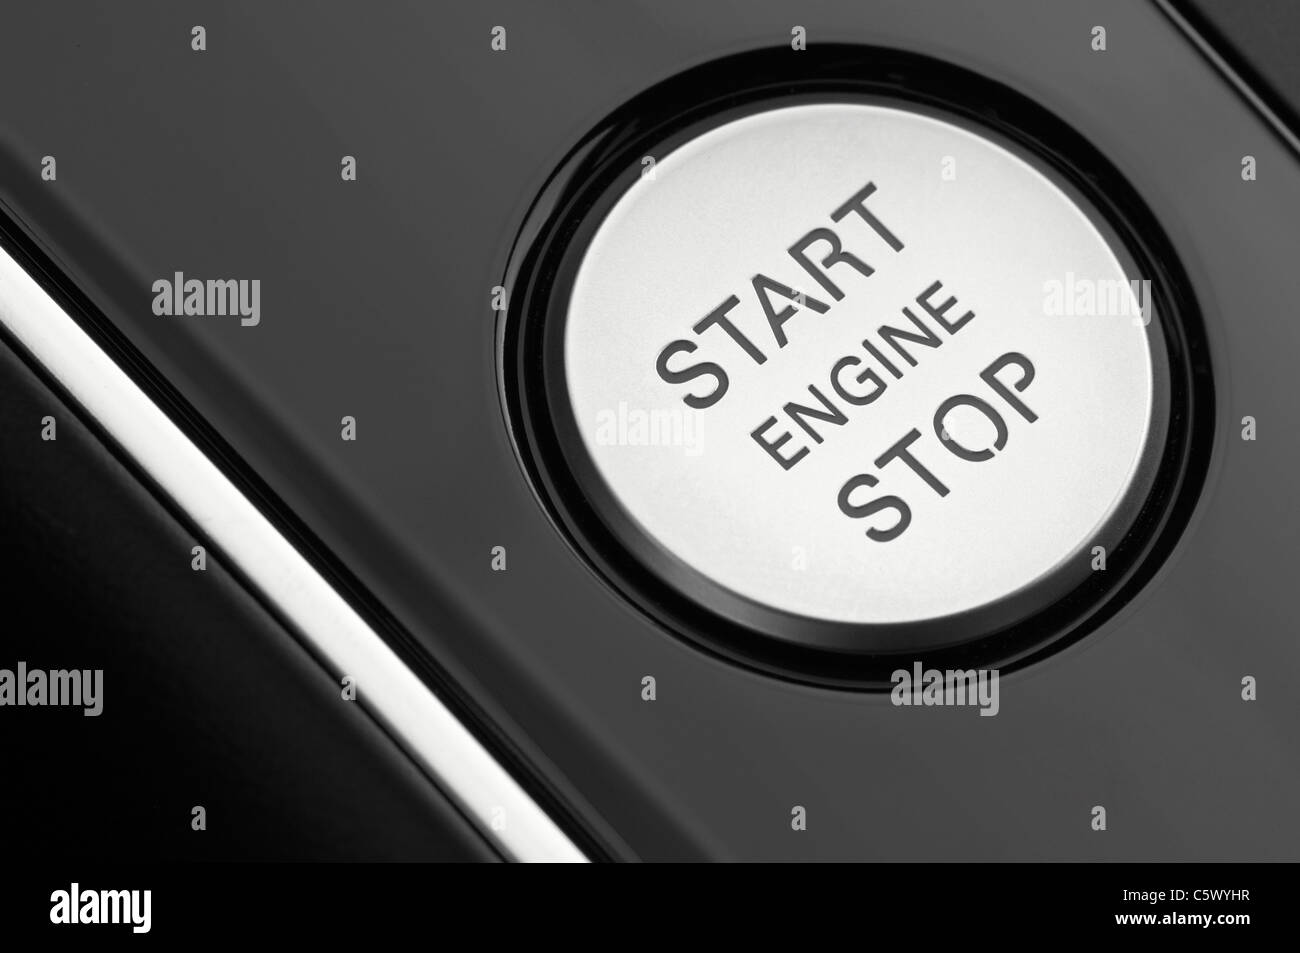 Car Ignition Stock Photos Images Alamy Alfa Romeo Timing Close Up Of A Cars Engine Button Image